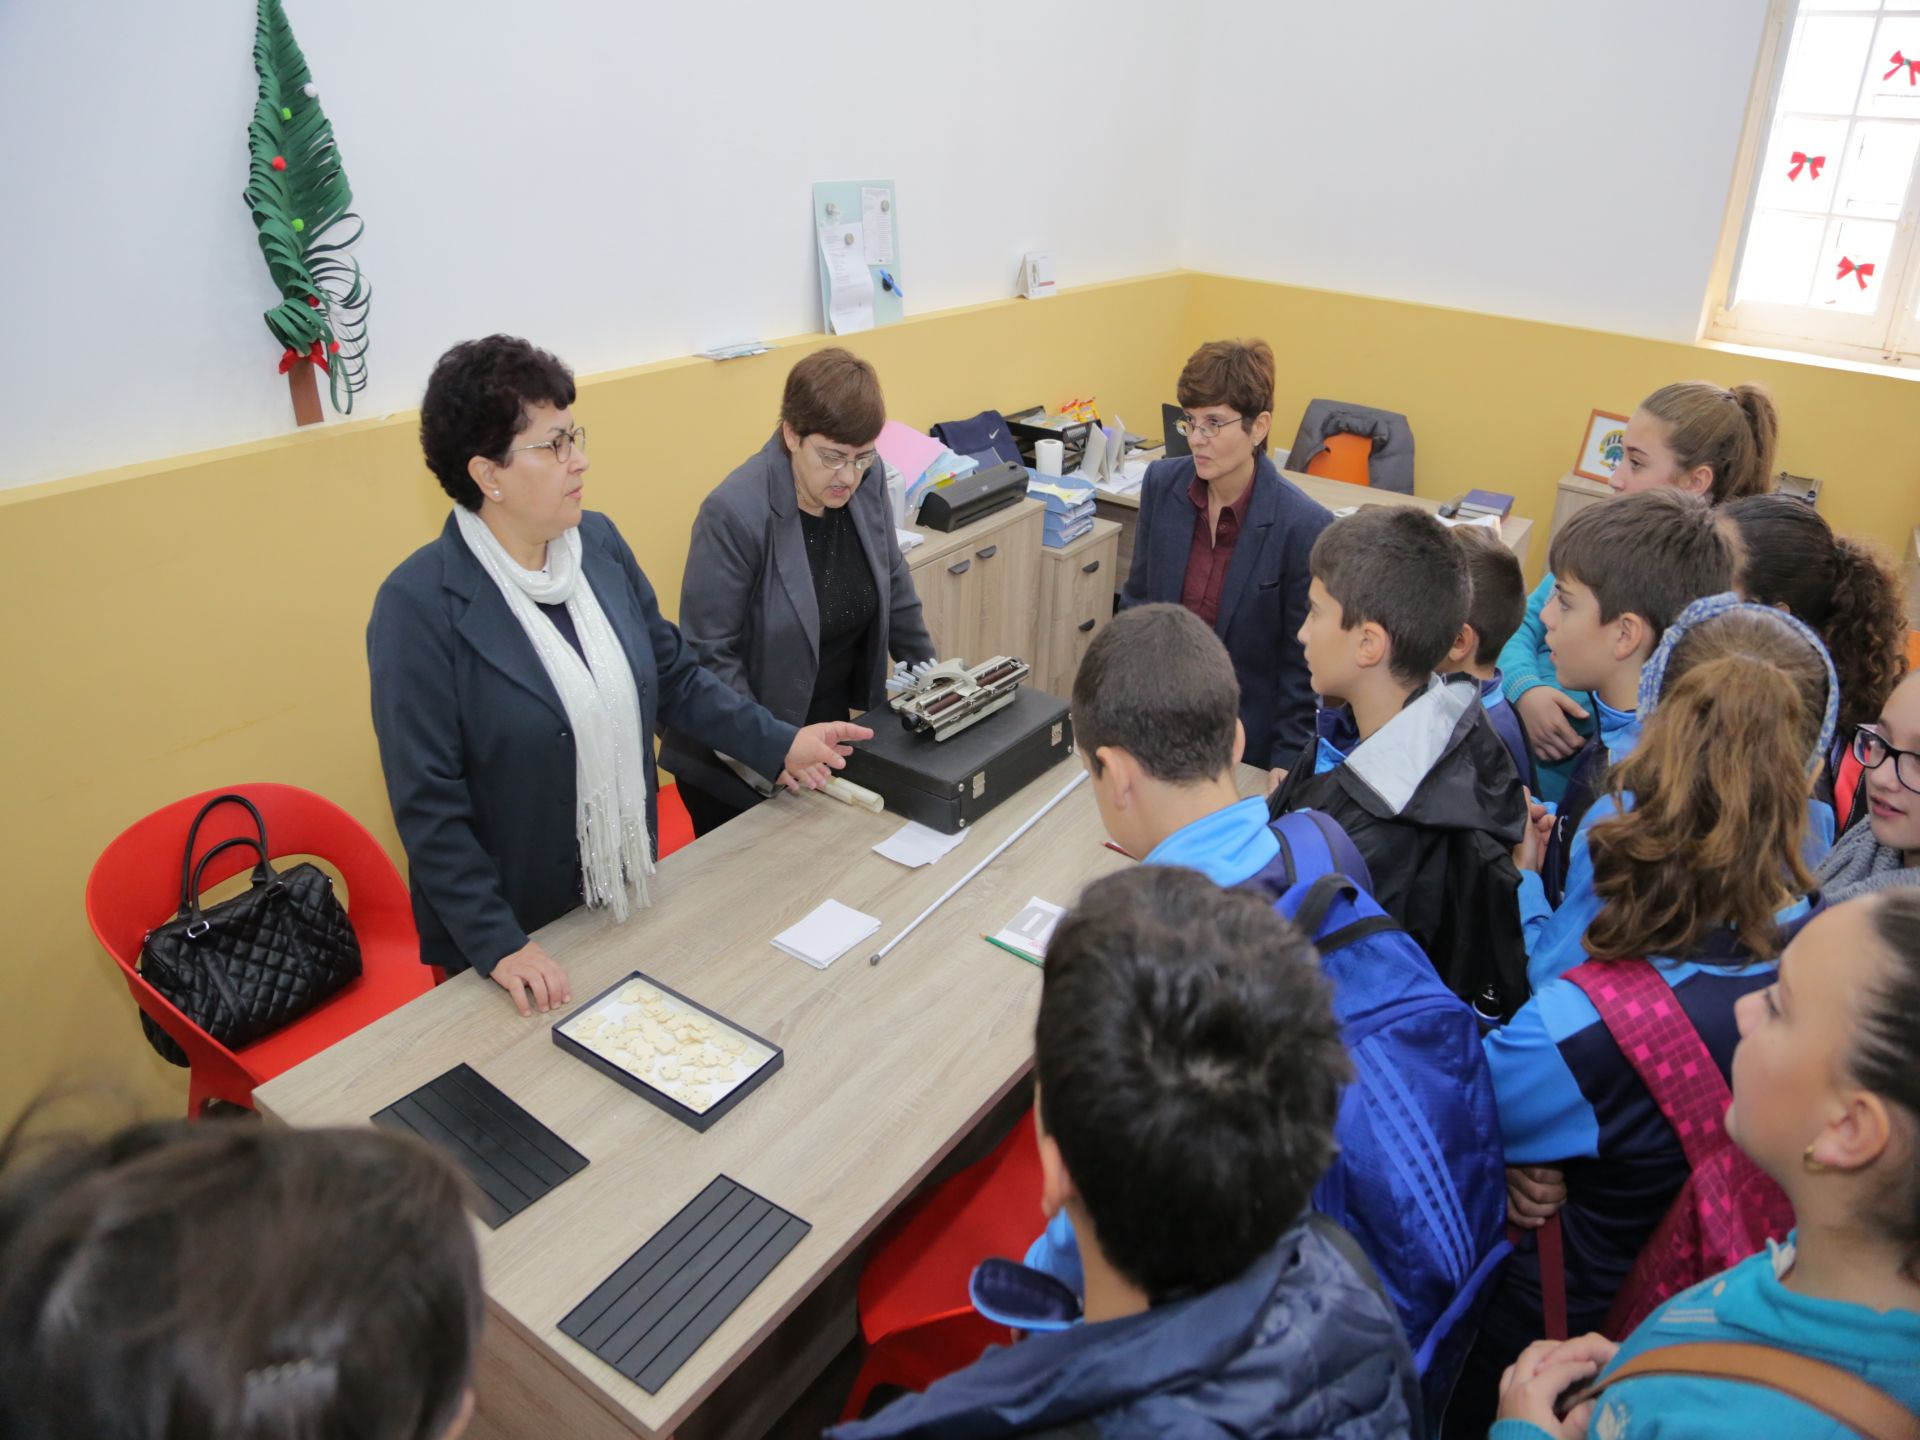 Group of children in a school during a lesson